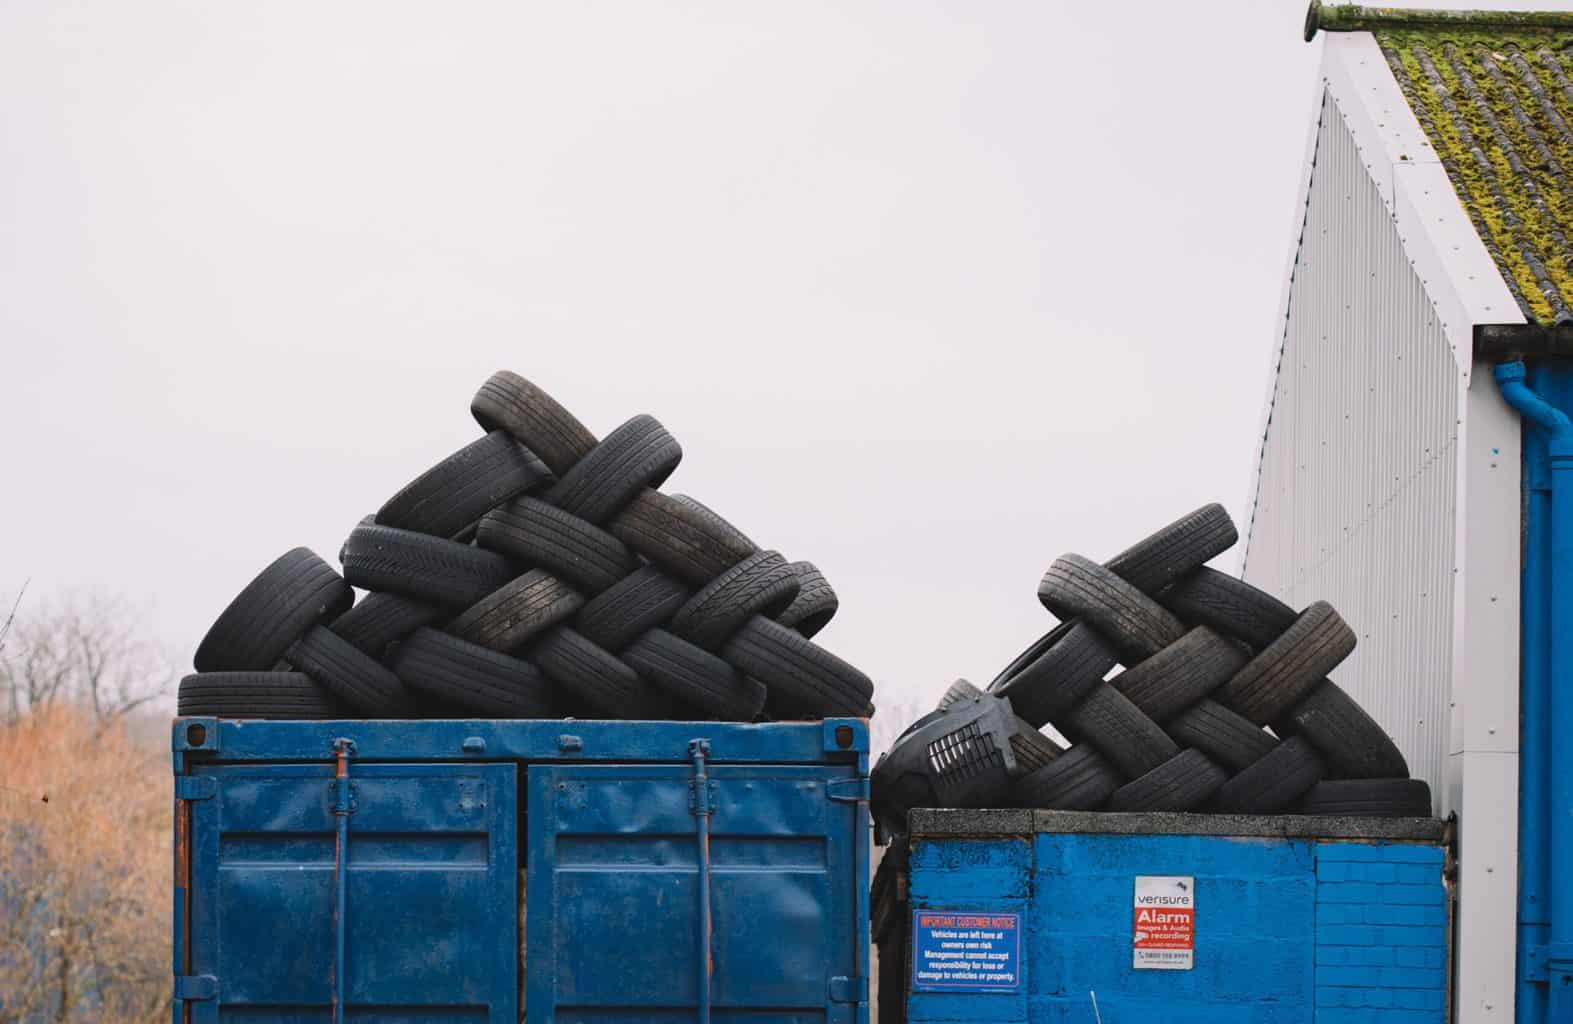 Two piles of car tires